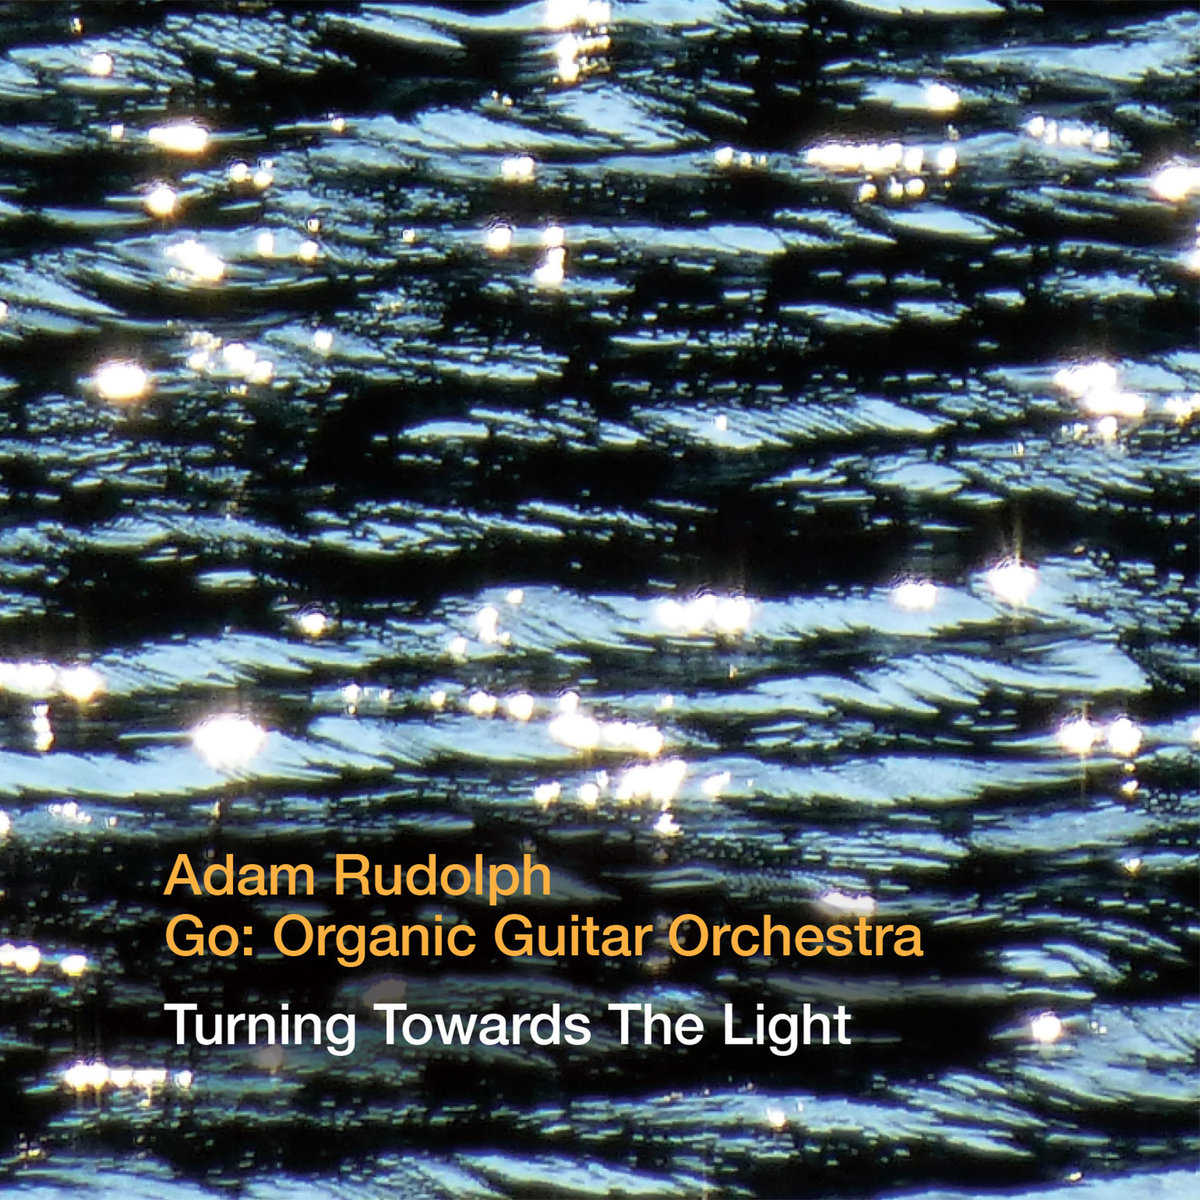 The cover for Cuneiform's 2015 CD of the Go: Organic Guitar Orchestra